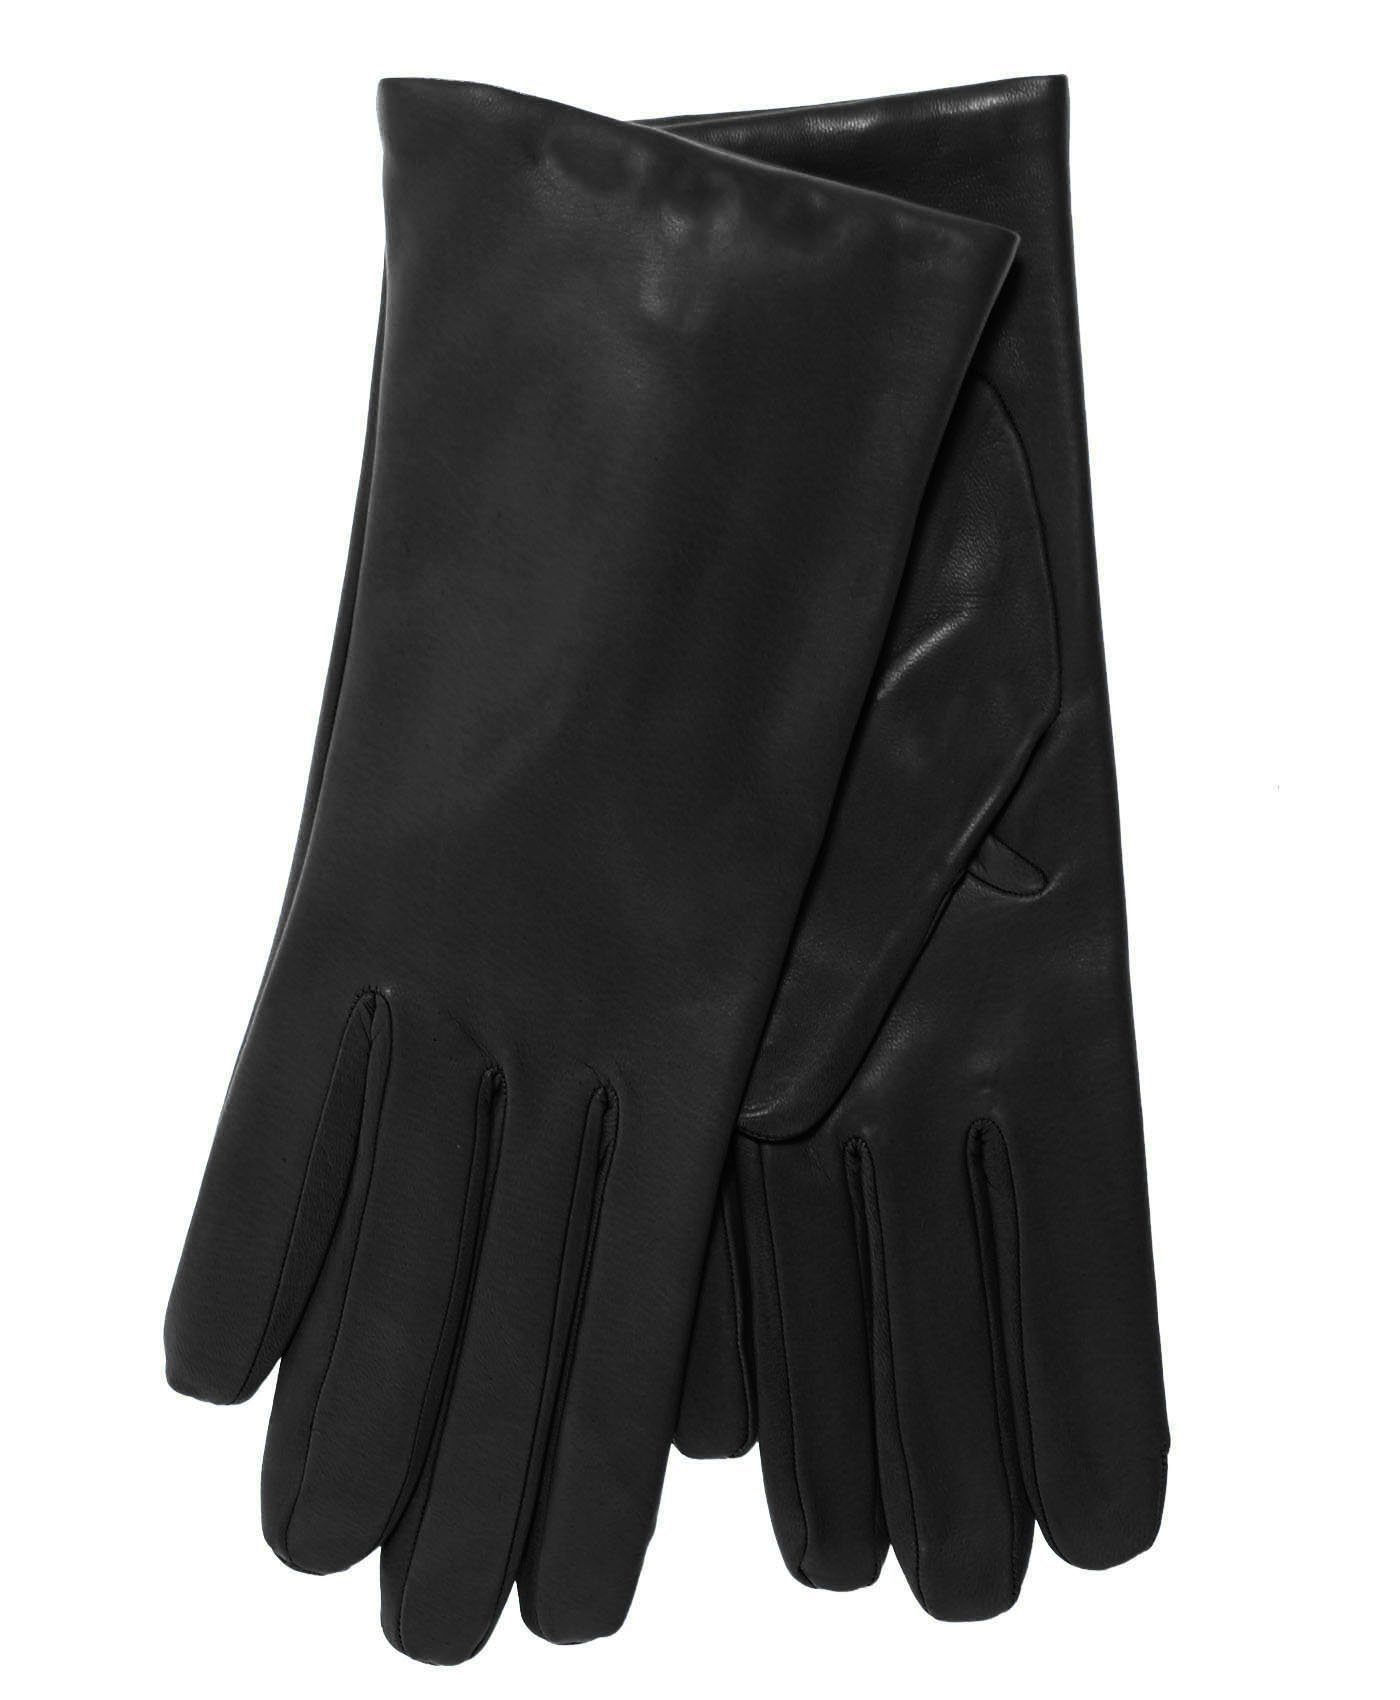 Fratelli Orsini Everyday Women's Italian Cashmere Lined Leather Gloves Size 7 1/2 Color Black